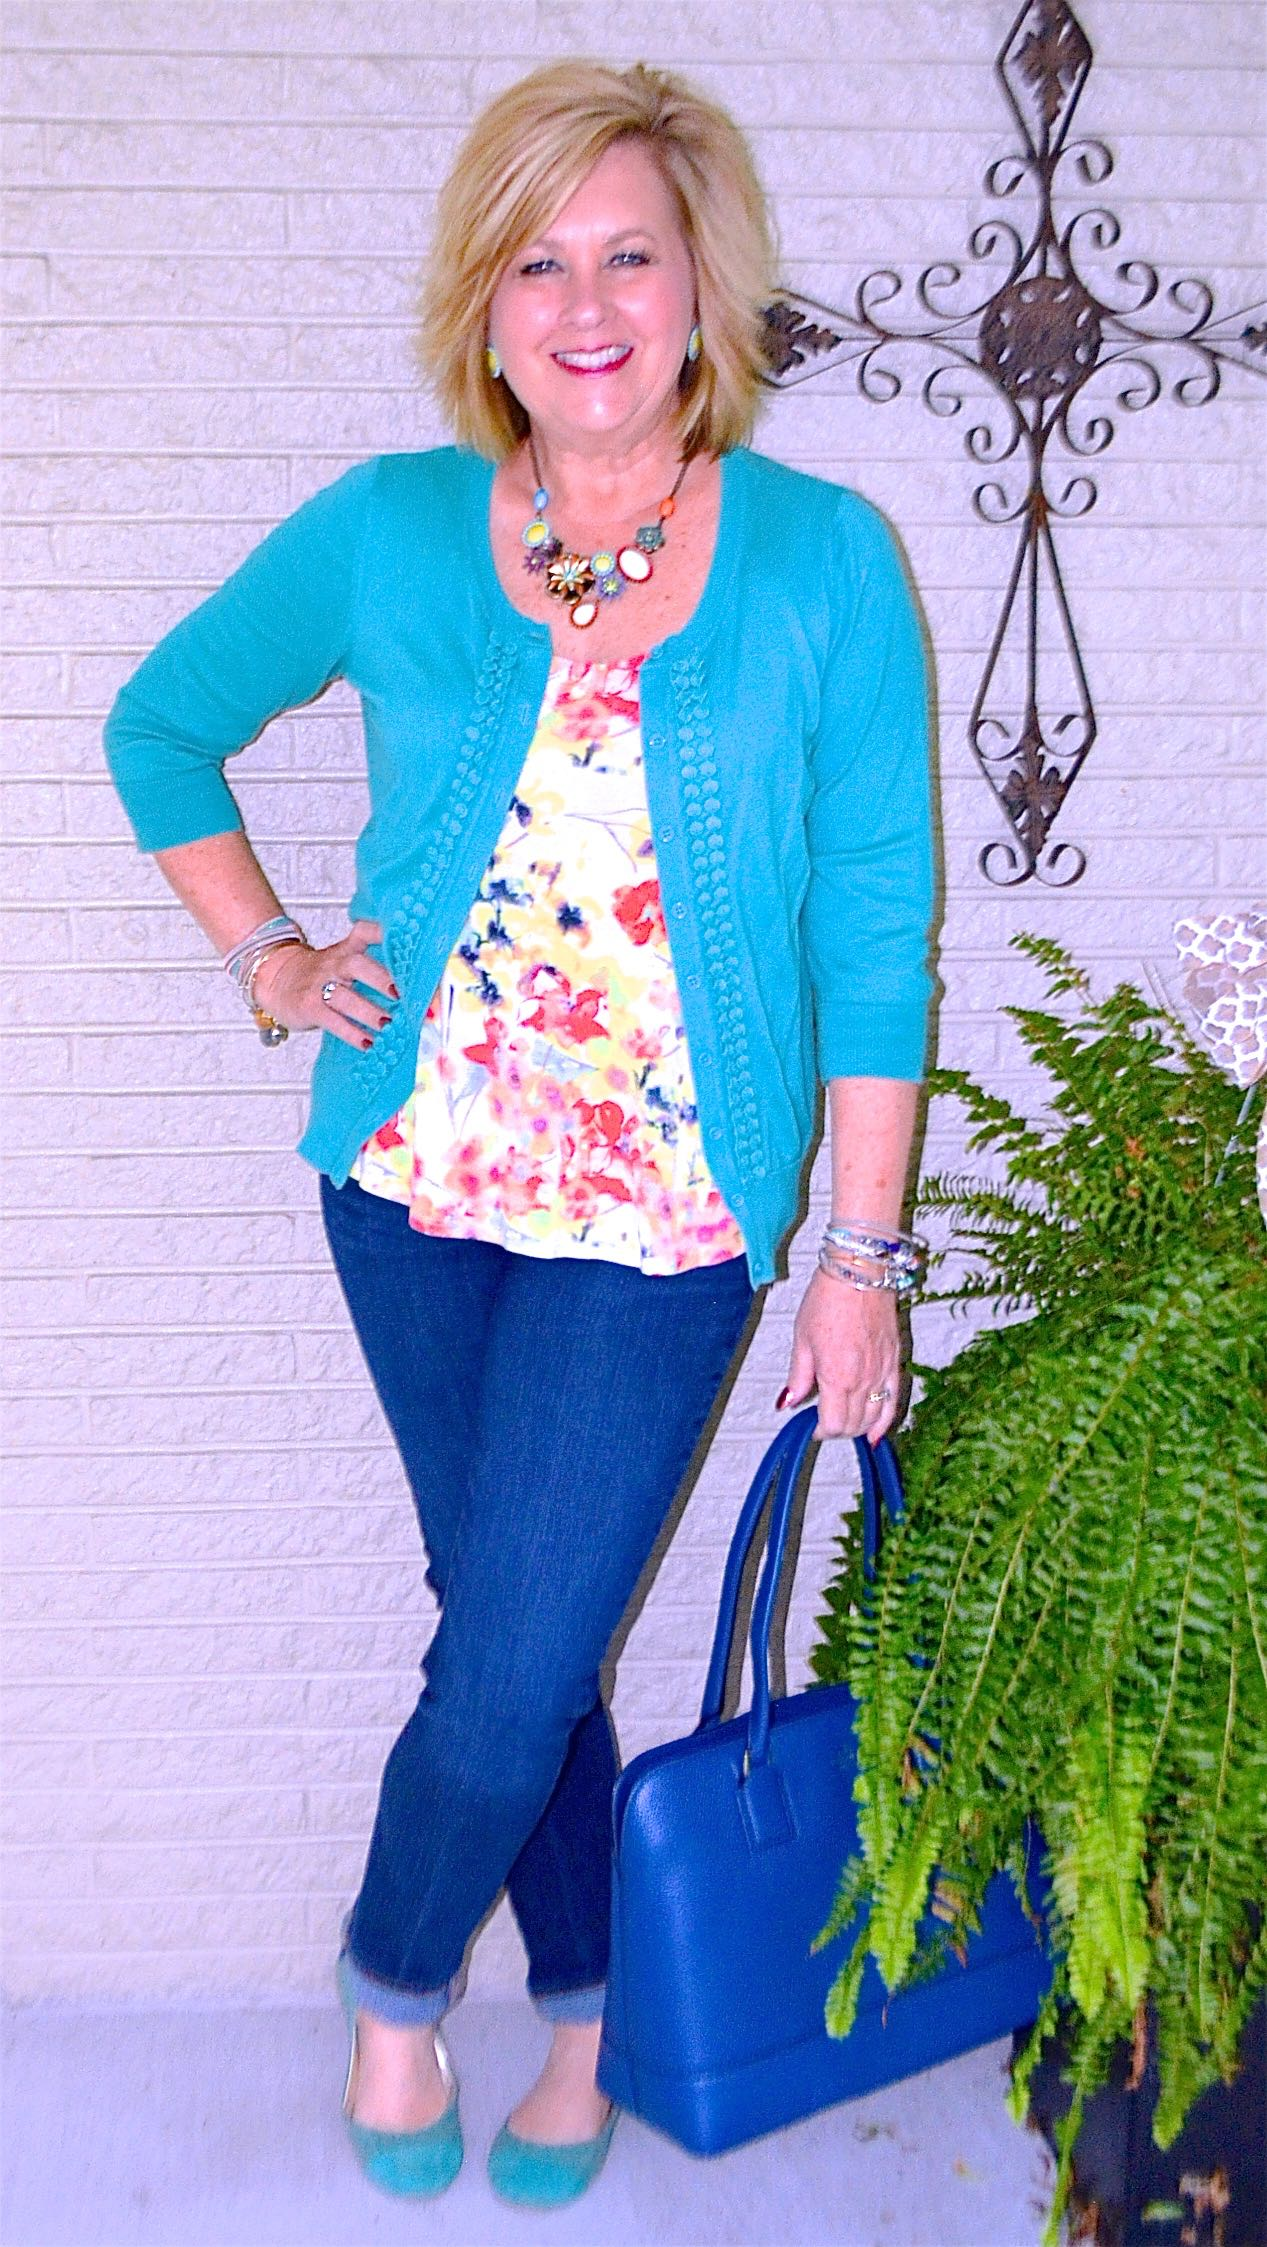 50 IS NOT OLD | WHY CHOOSE A PATTERNED TOP